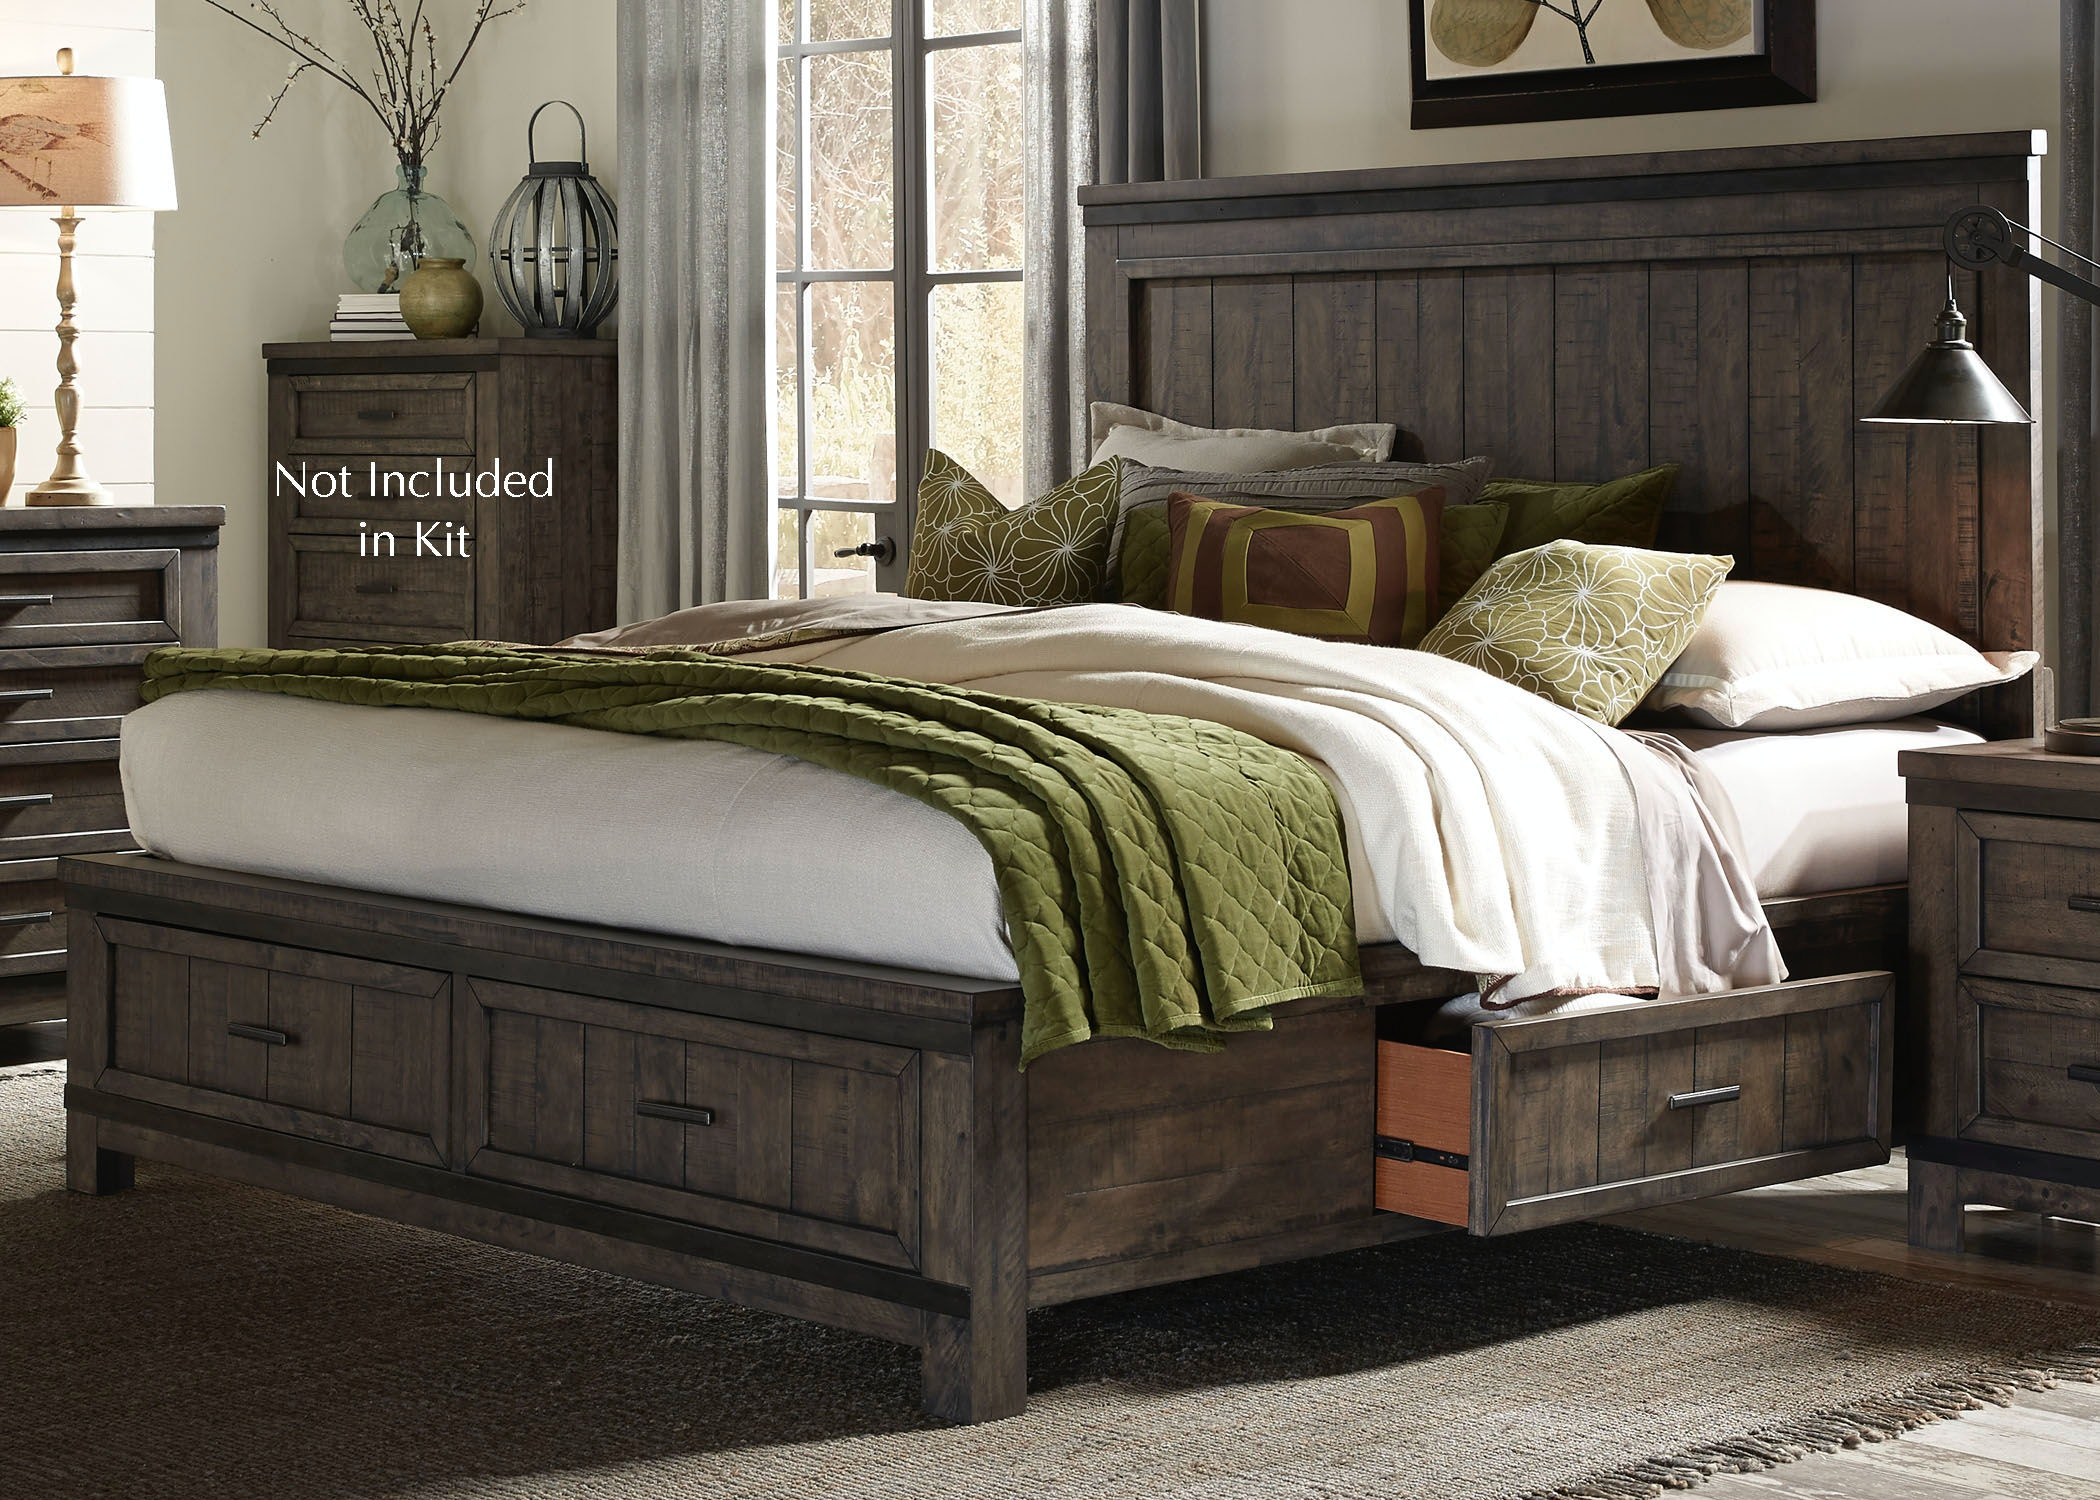 liberty bedroom furniture liberty furniture bedroom king two sided storage bed 759 12082